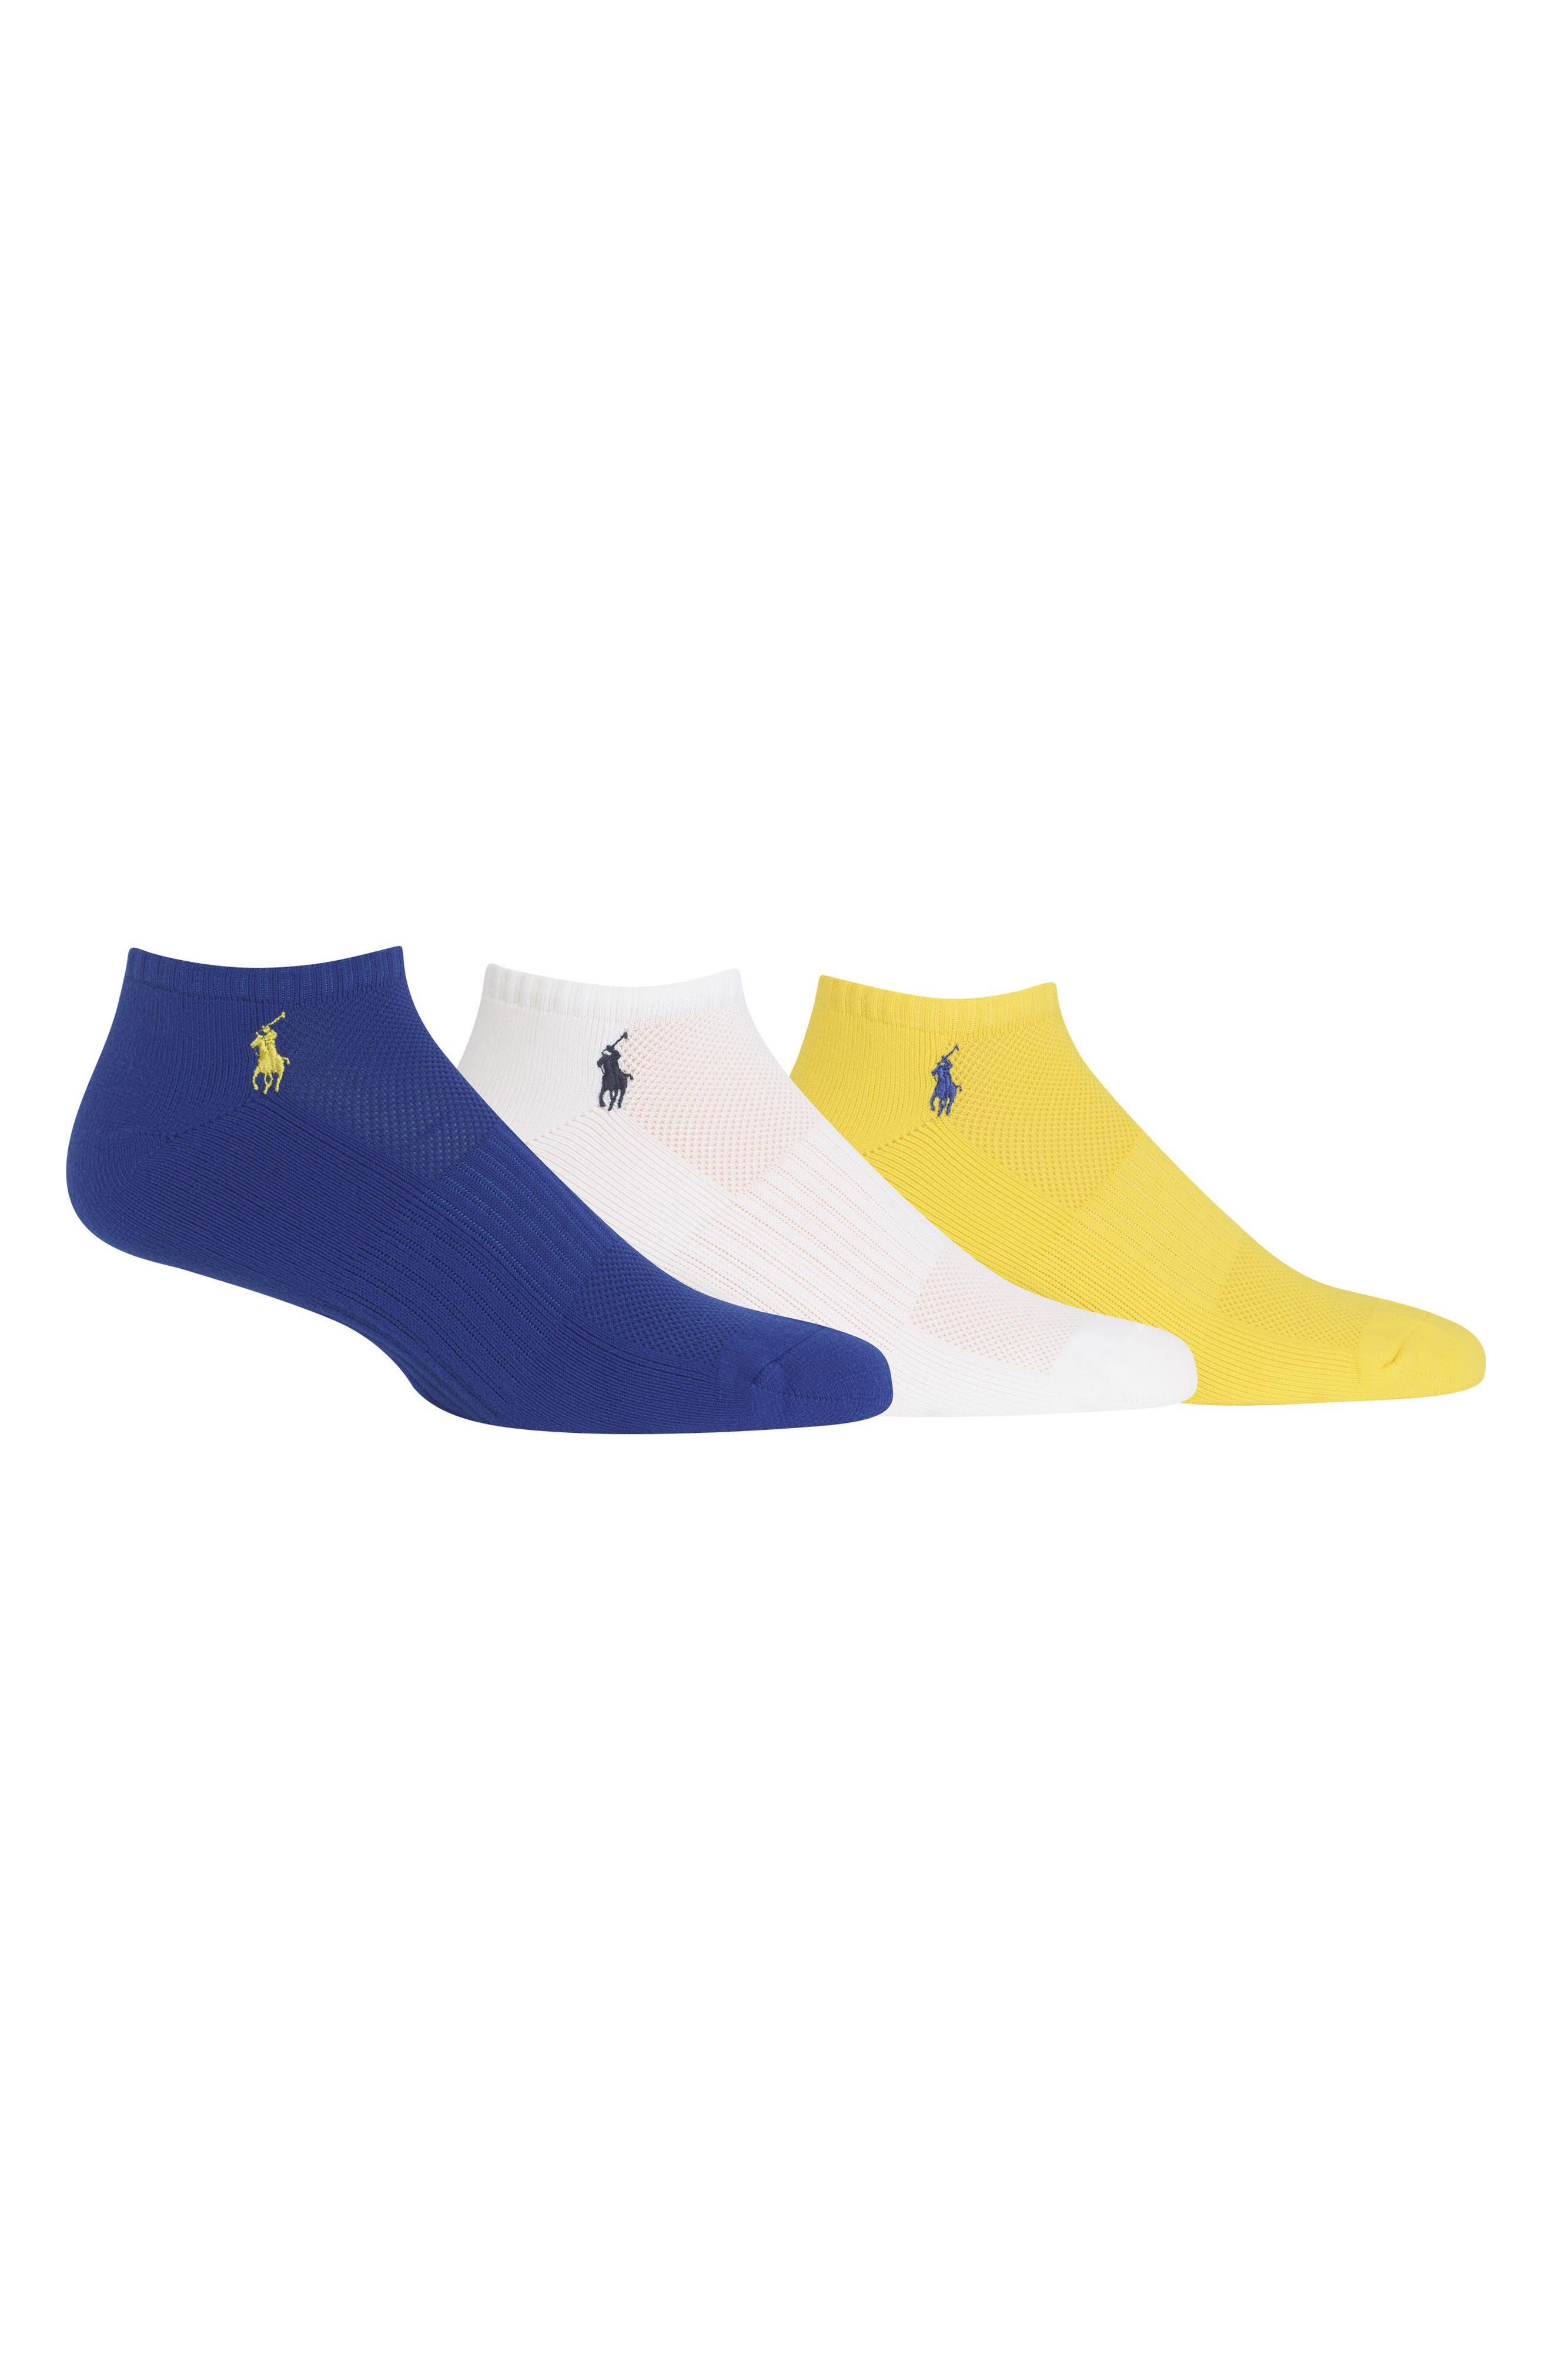 3-Pack Technical Sport Socks,                         Main,                         color, Royal/ White/ Yellow